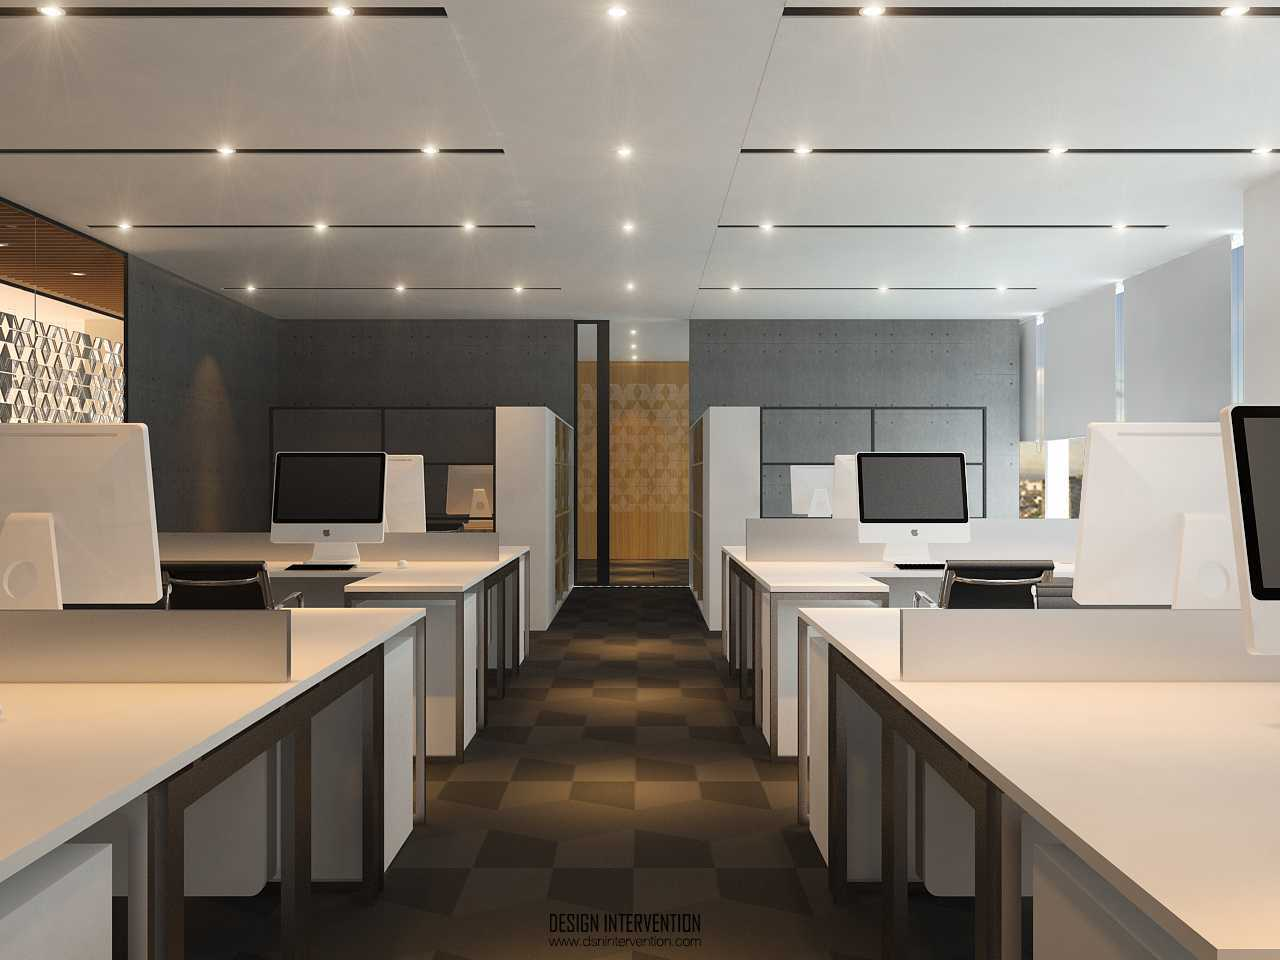 Design Intervention Mitsubishi Hq Office Tebet Tebet General-Working-Area-View   14979